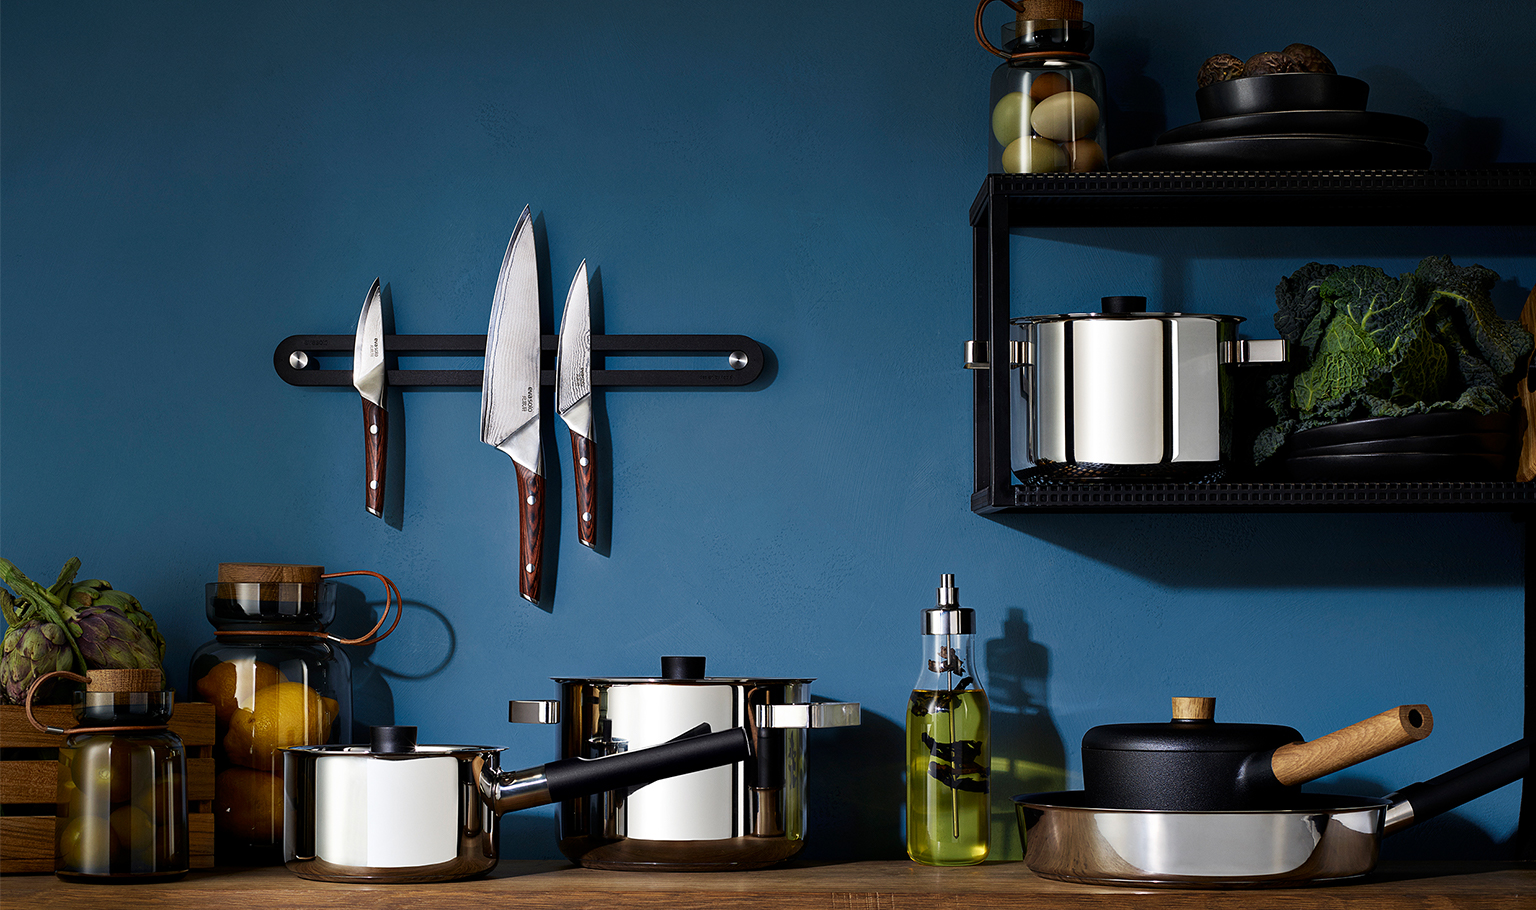 <p>The same aesthetic idiom as the familiar Nordic kitchen cookware, but now with black handles, and totally dishwasher-safe. </p>